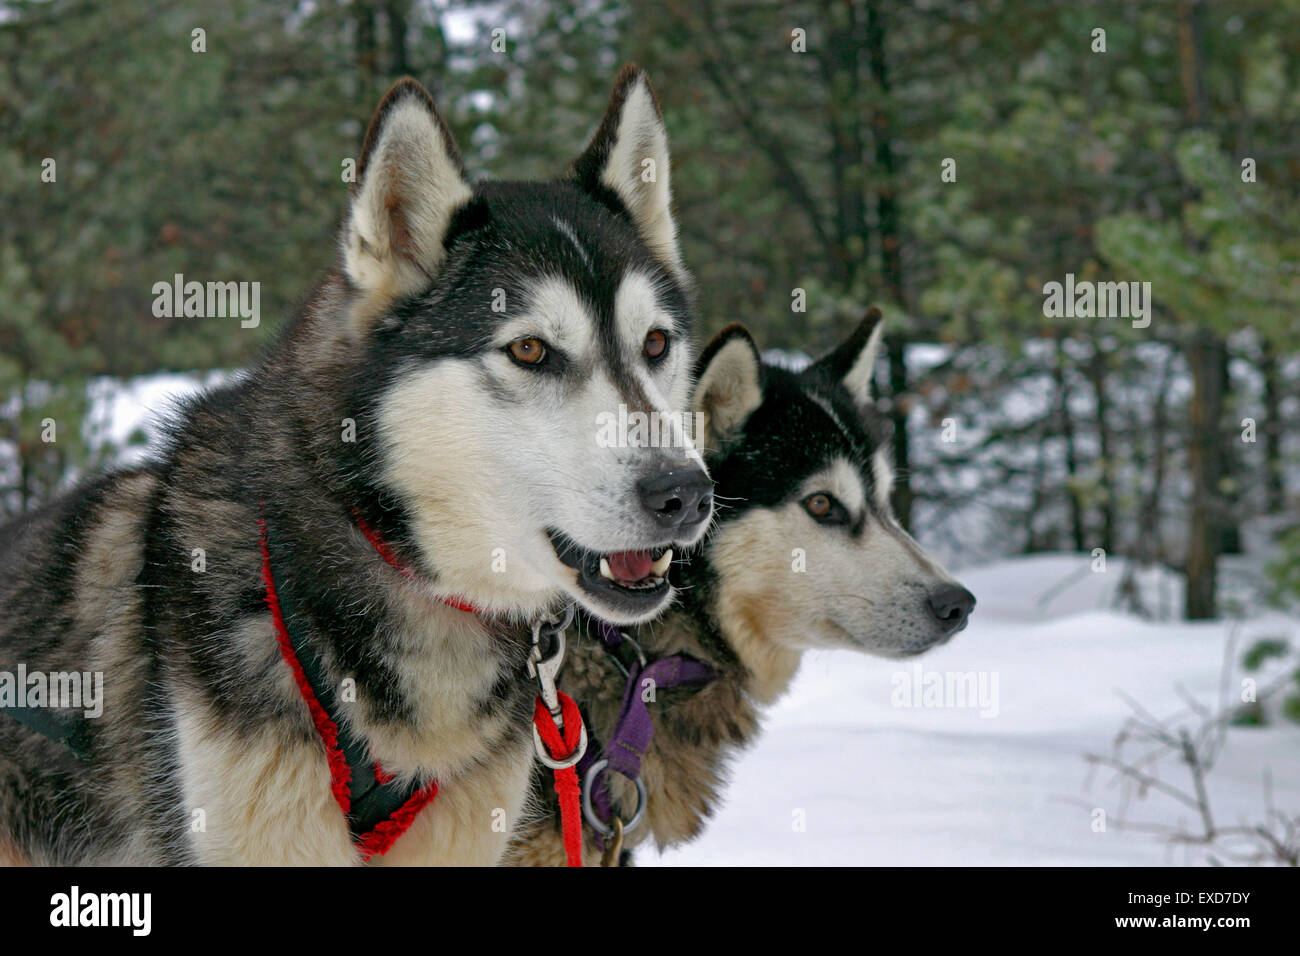 Two Siberian Huskies, lead dogs waiting to pull sleigh Stock Photo